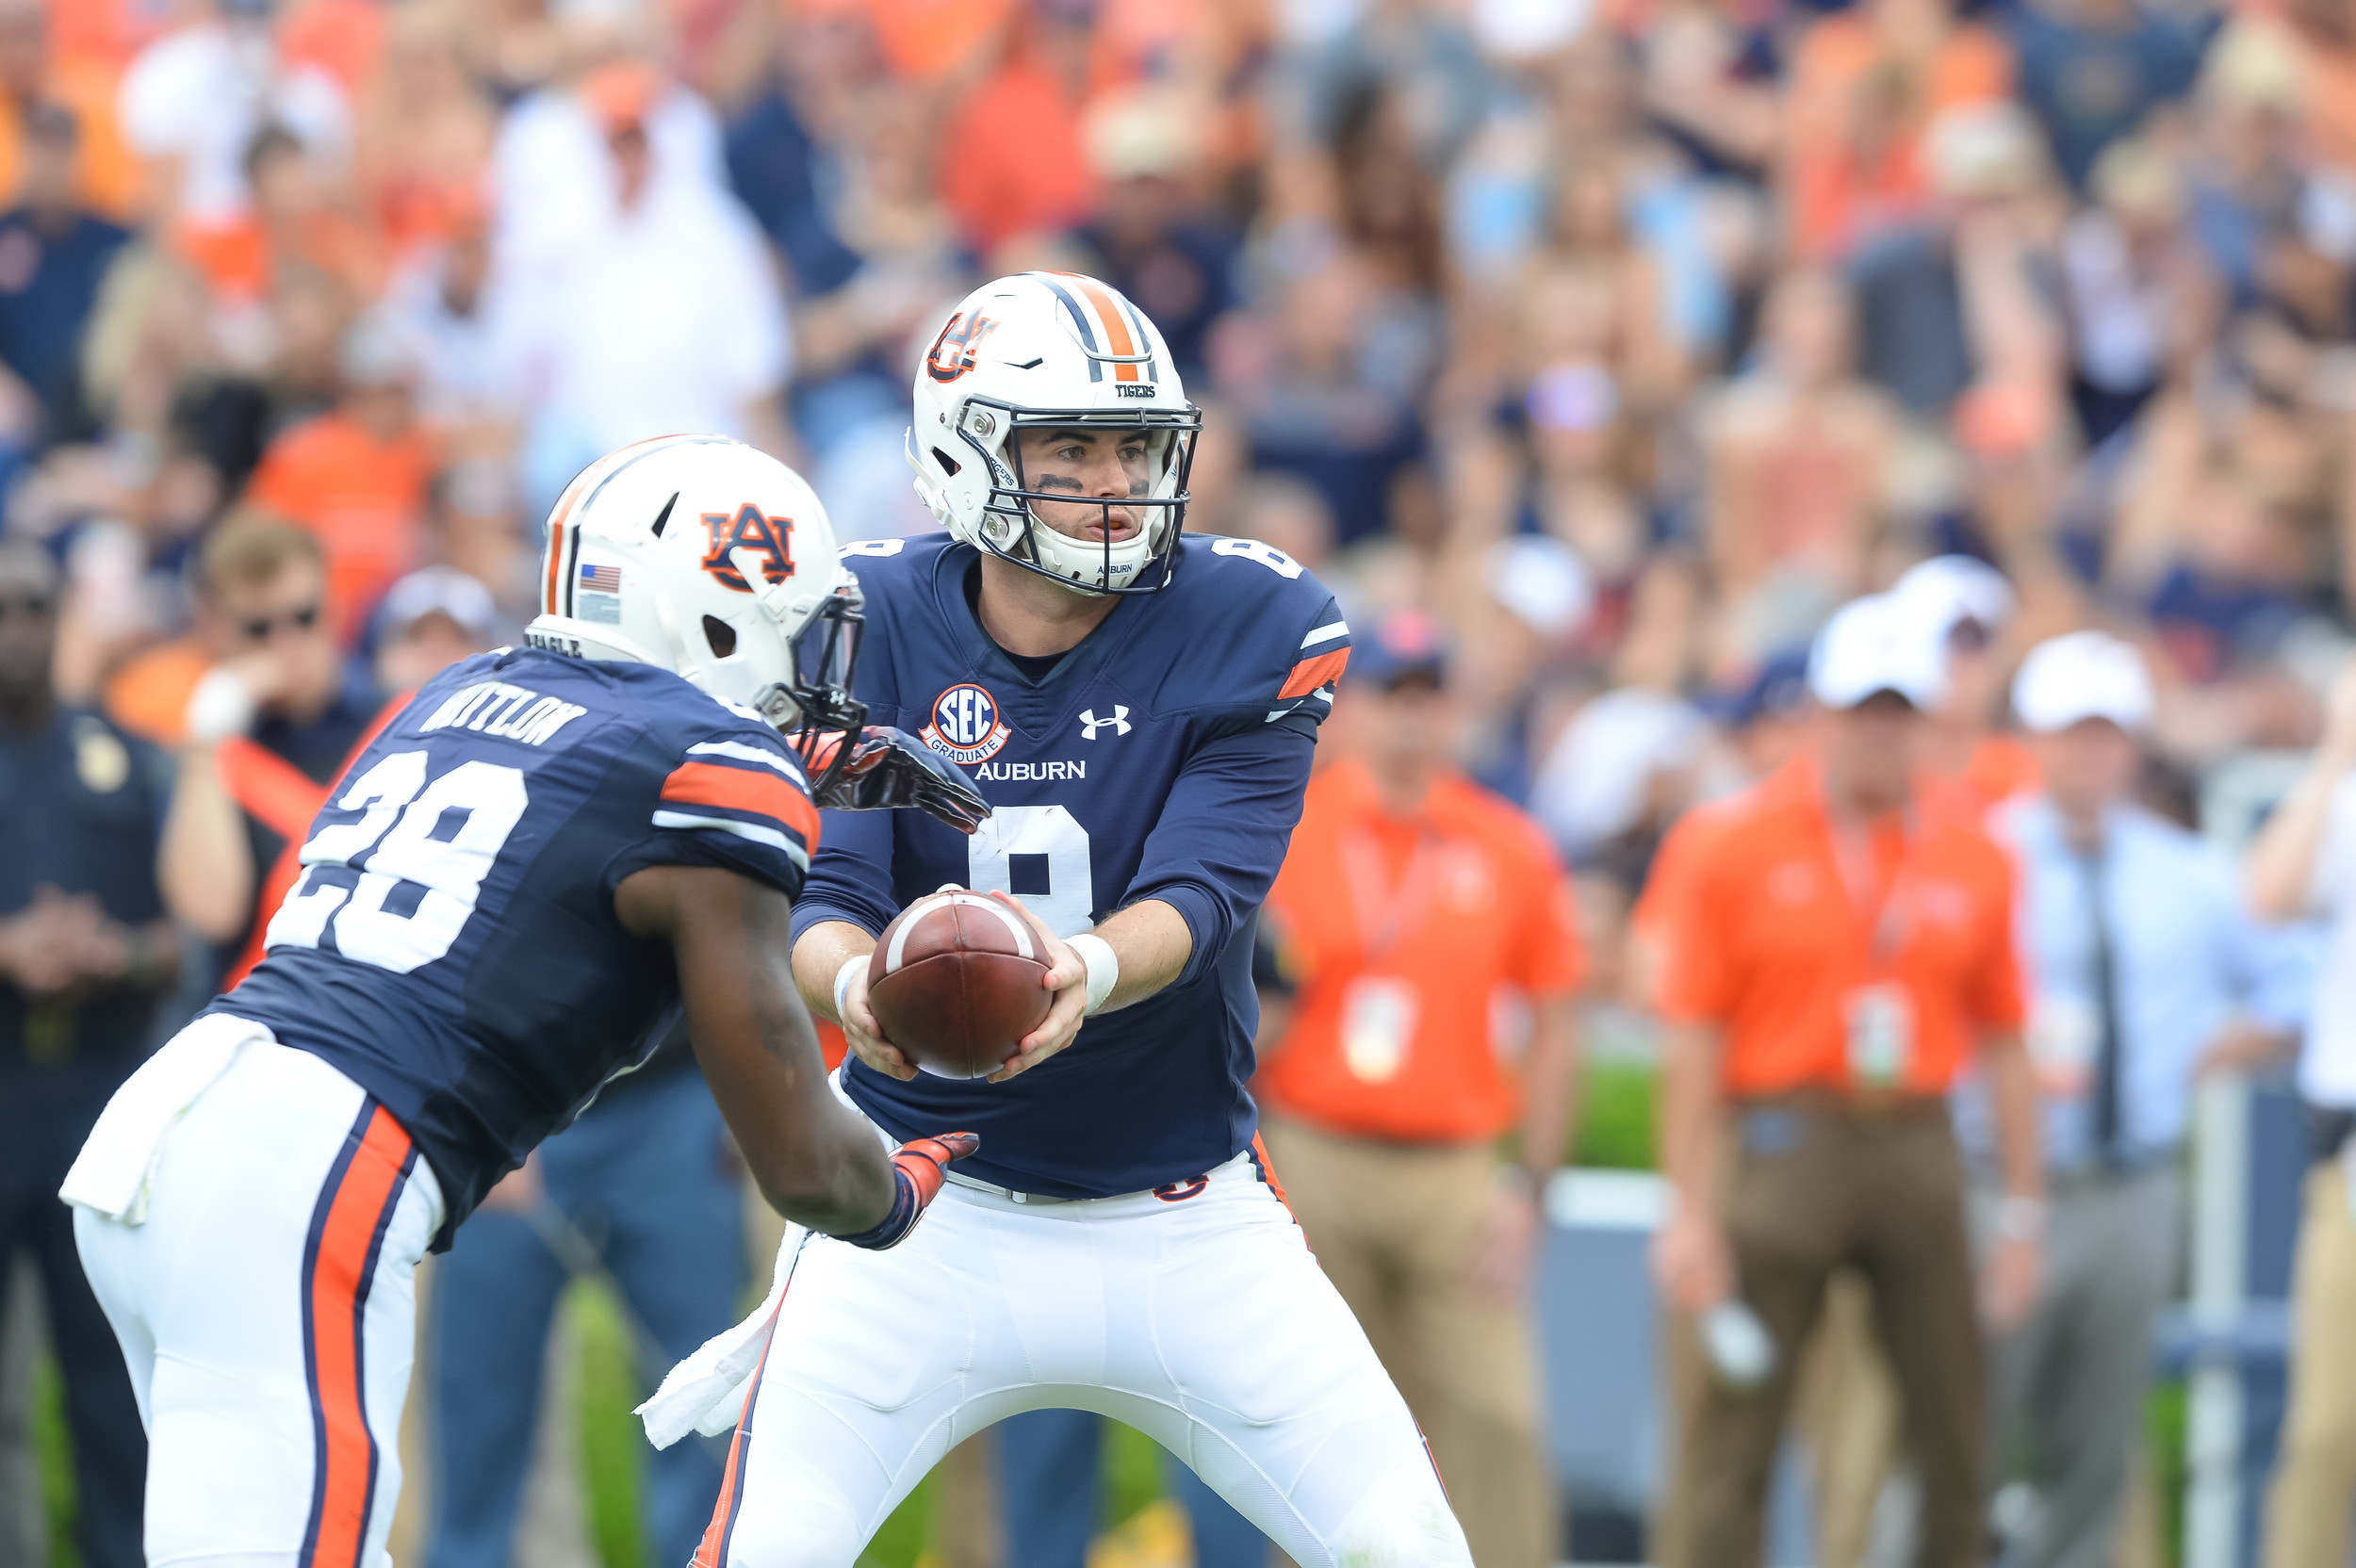 Auburn Tigers quarterback Jarrett Stidham (8) hands off to 1running back JaTarvious Whitlow (28) during the first half of Saturday's game, at Jordan Hare Stadium in Auburn AL. Daily Mountain Eagle -  Jeff Johnsey